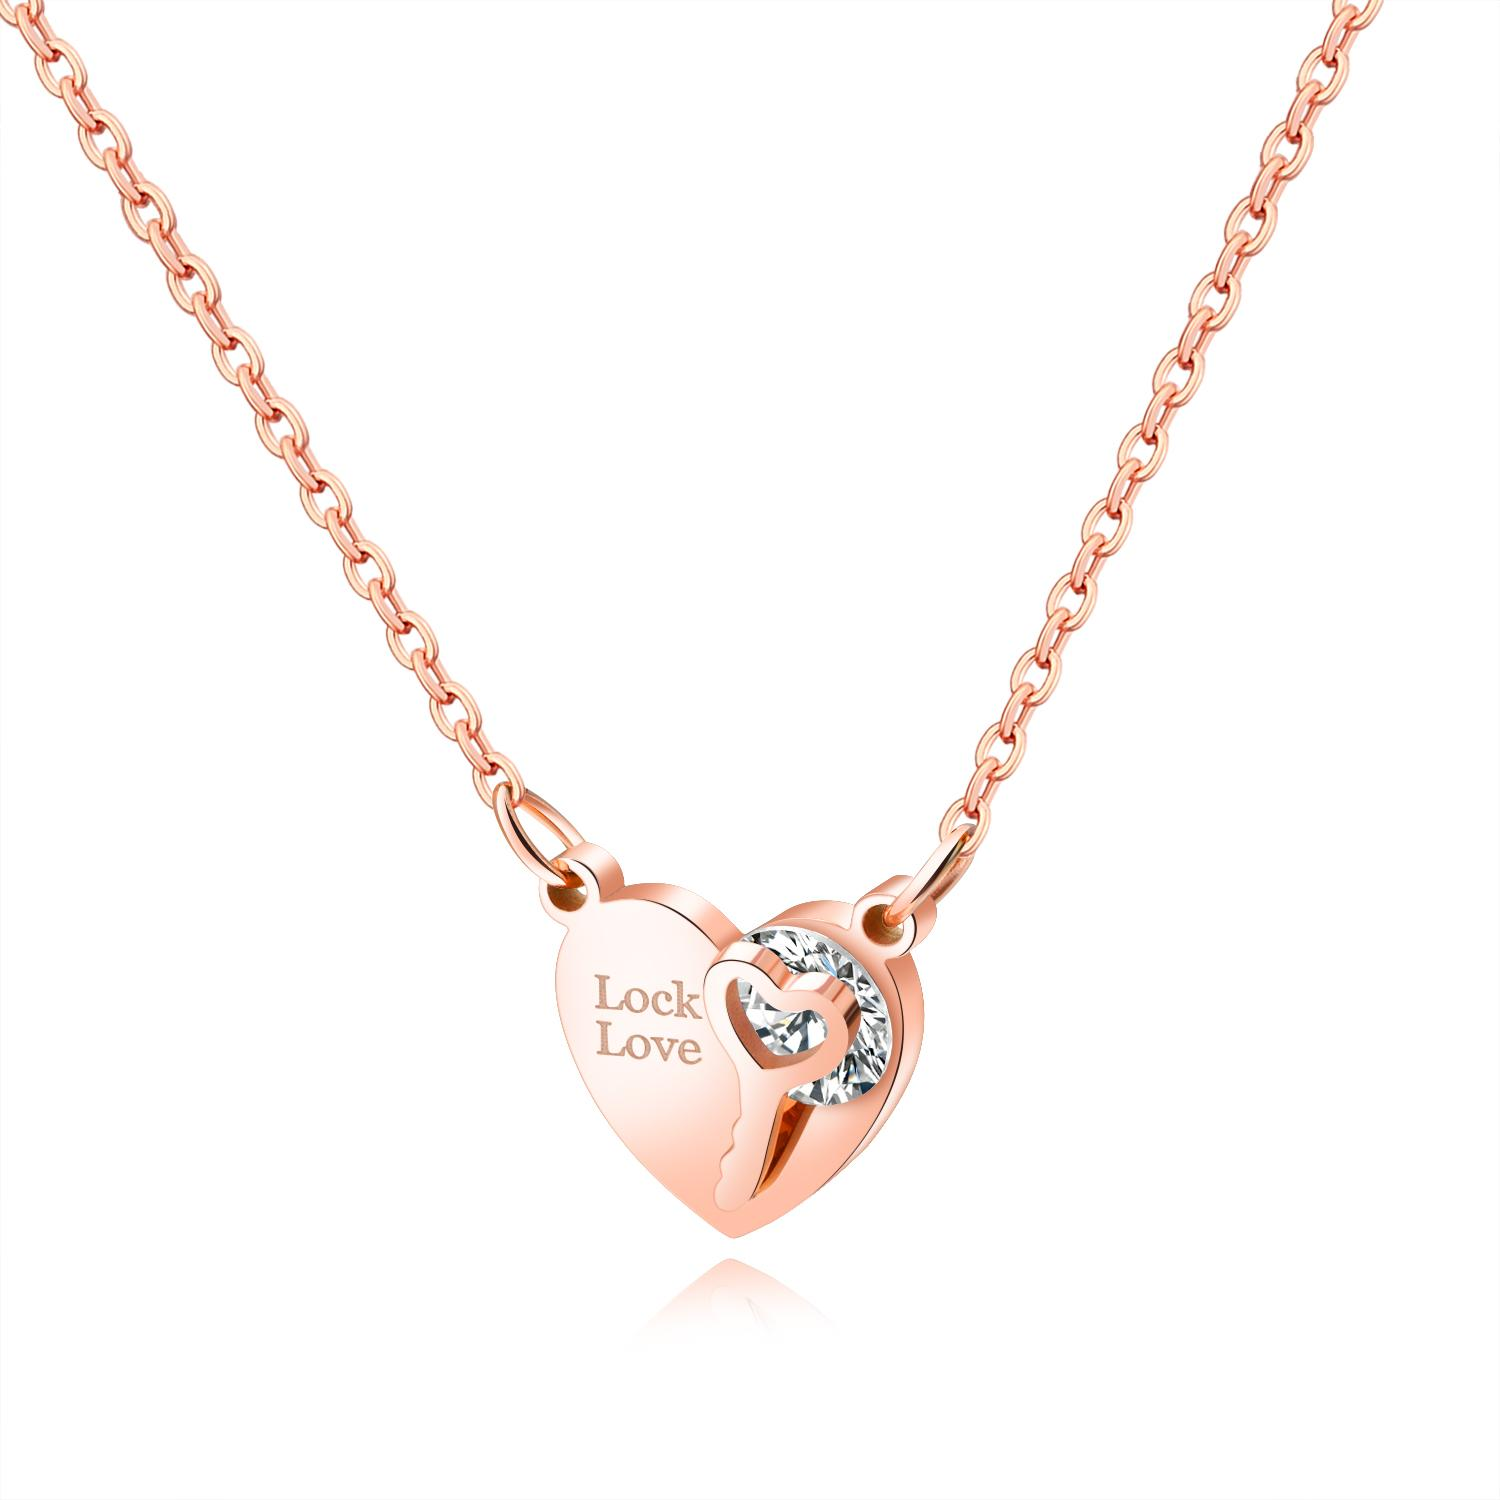 dadc44169e Wholesale Rose Gold Color Love Lock Necklaces For Women Stainless Steel  Heart/Key Chokers Pendants & Necklaces Female Jewelry GX1387 Gold Necklace  Heart ...